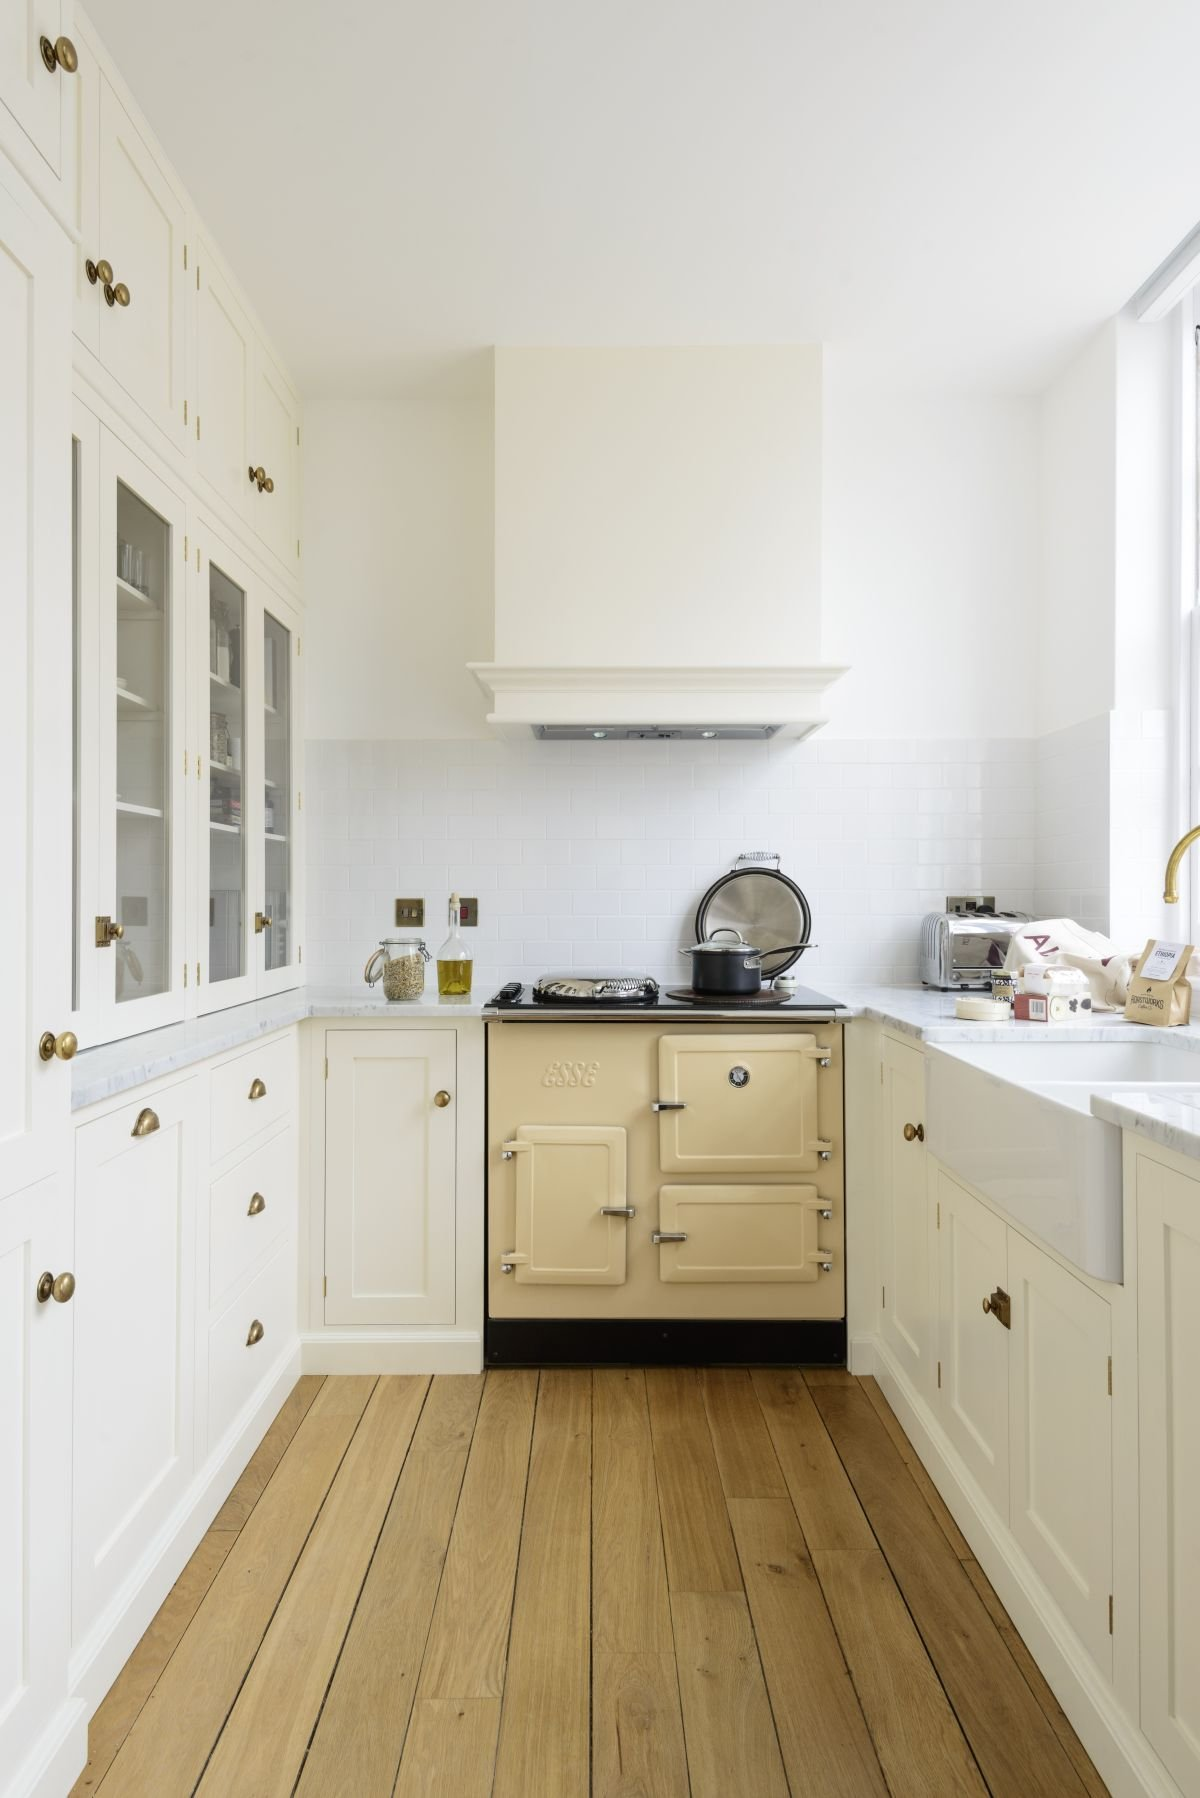 Small kitchen design: 10 steps to plan your design and enhance your kitchen space